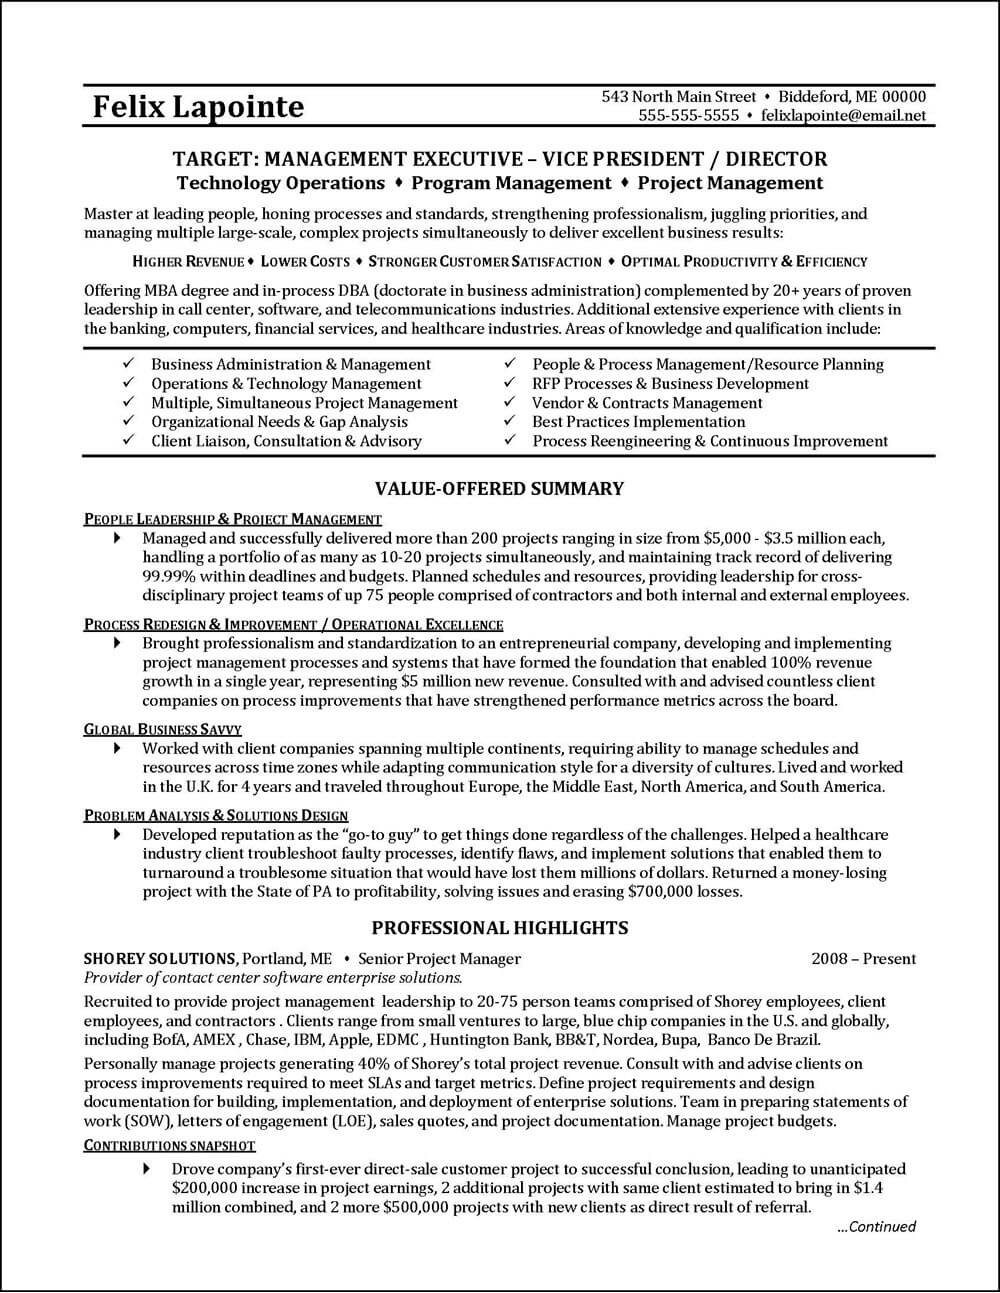 Example Of A Resume Program Manager Resume Example Page 1 example of a resume wikiresume.com